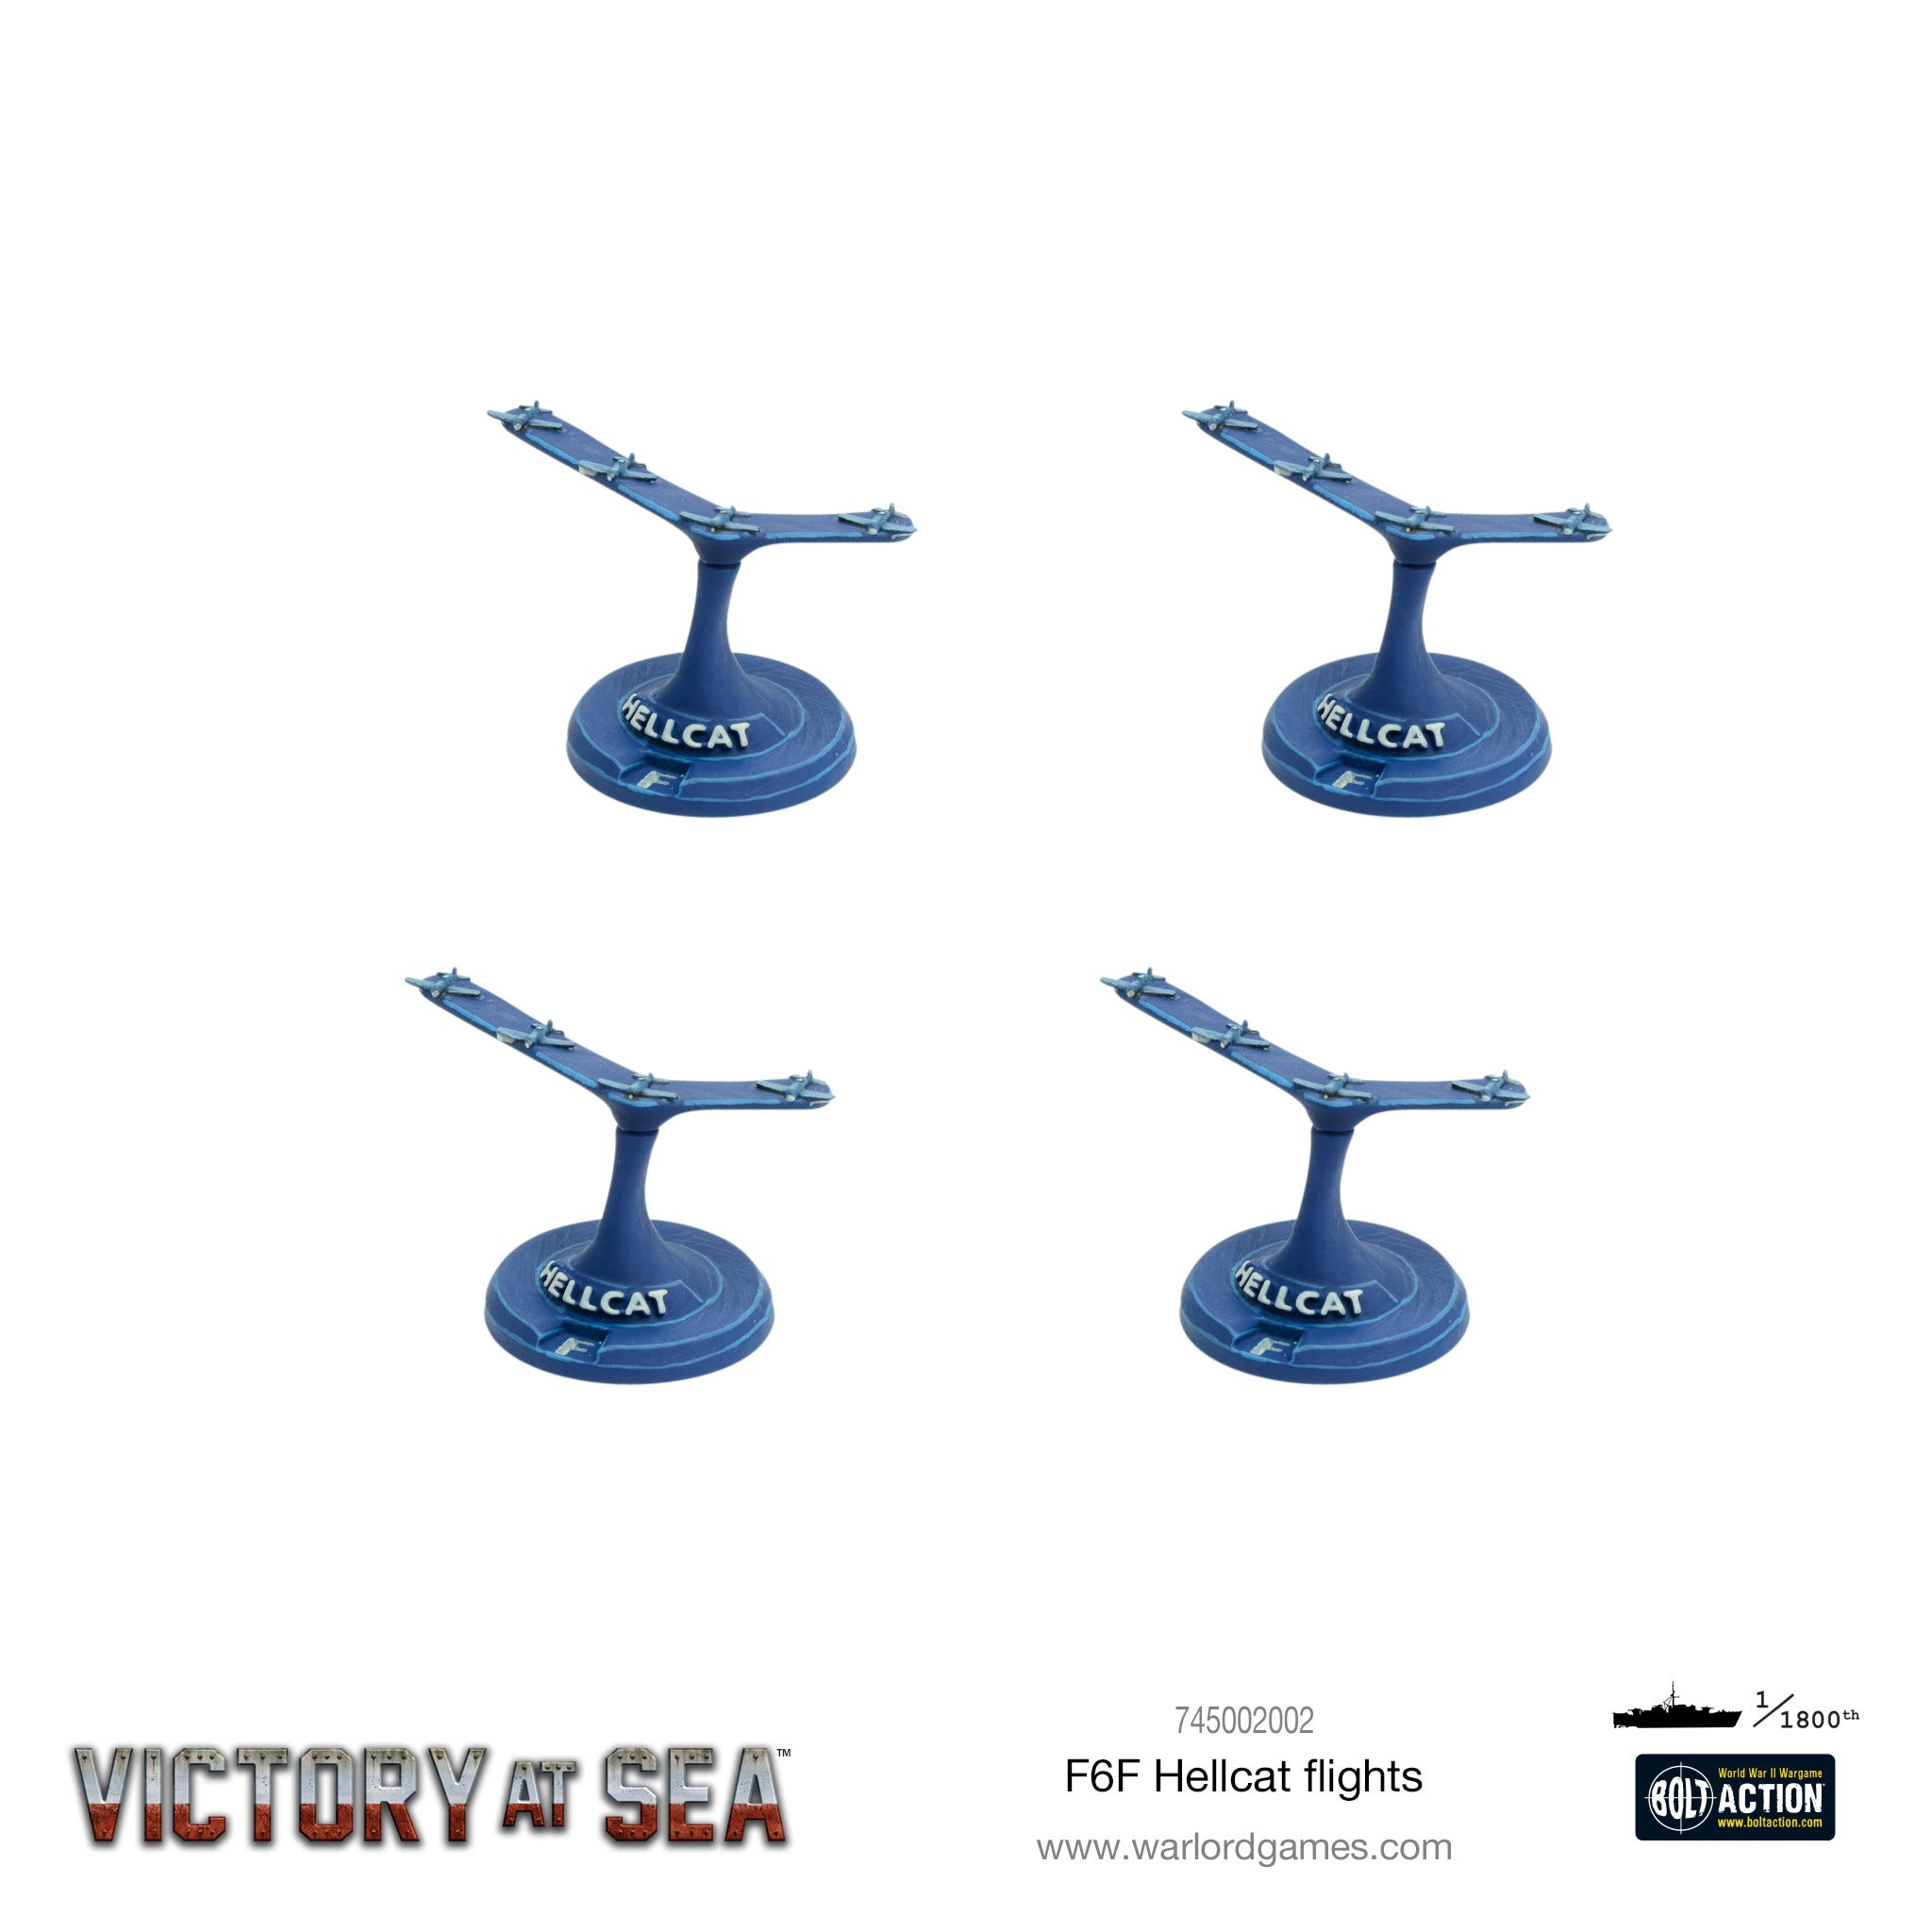 Victory at sea - F6F Hellcat Flights